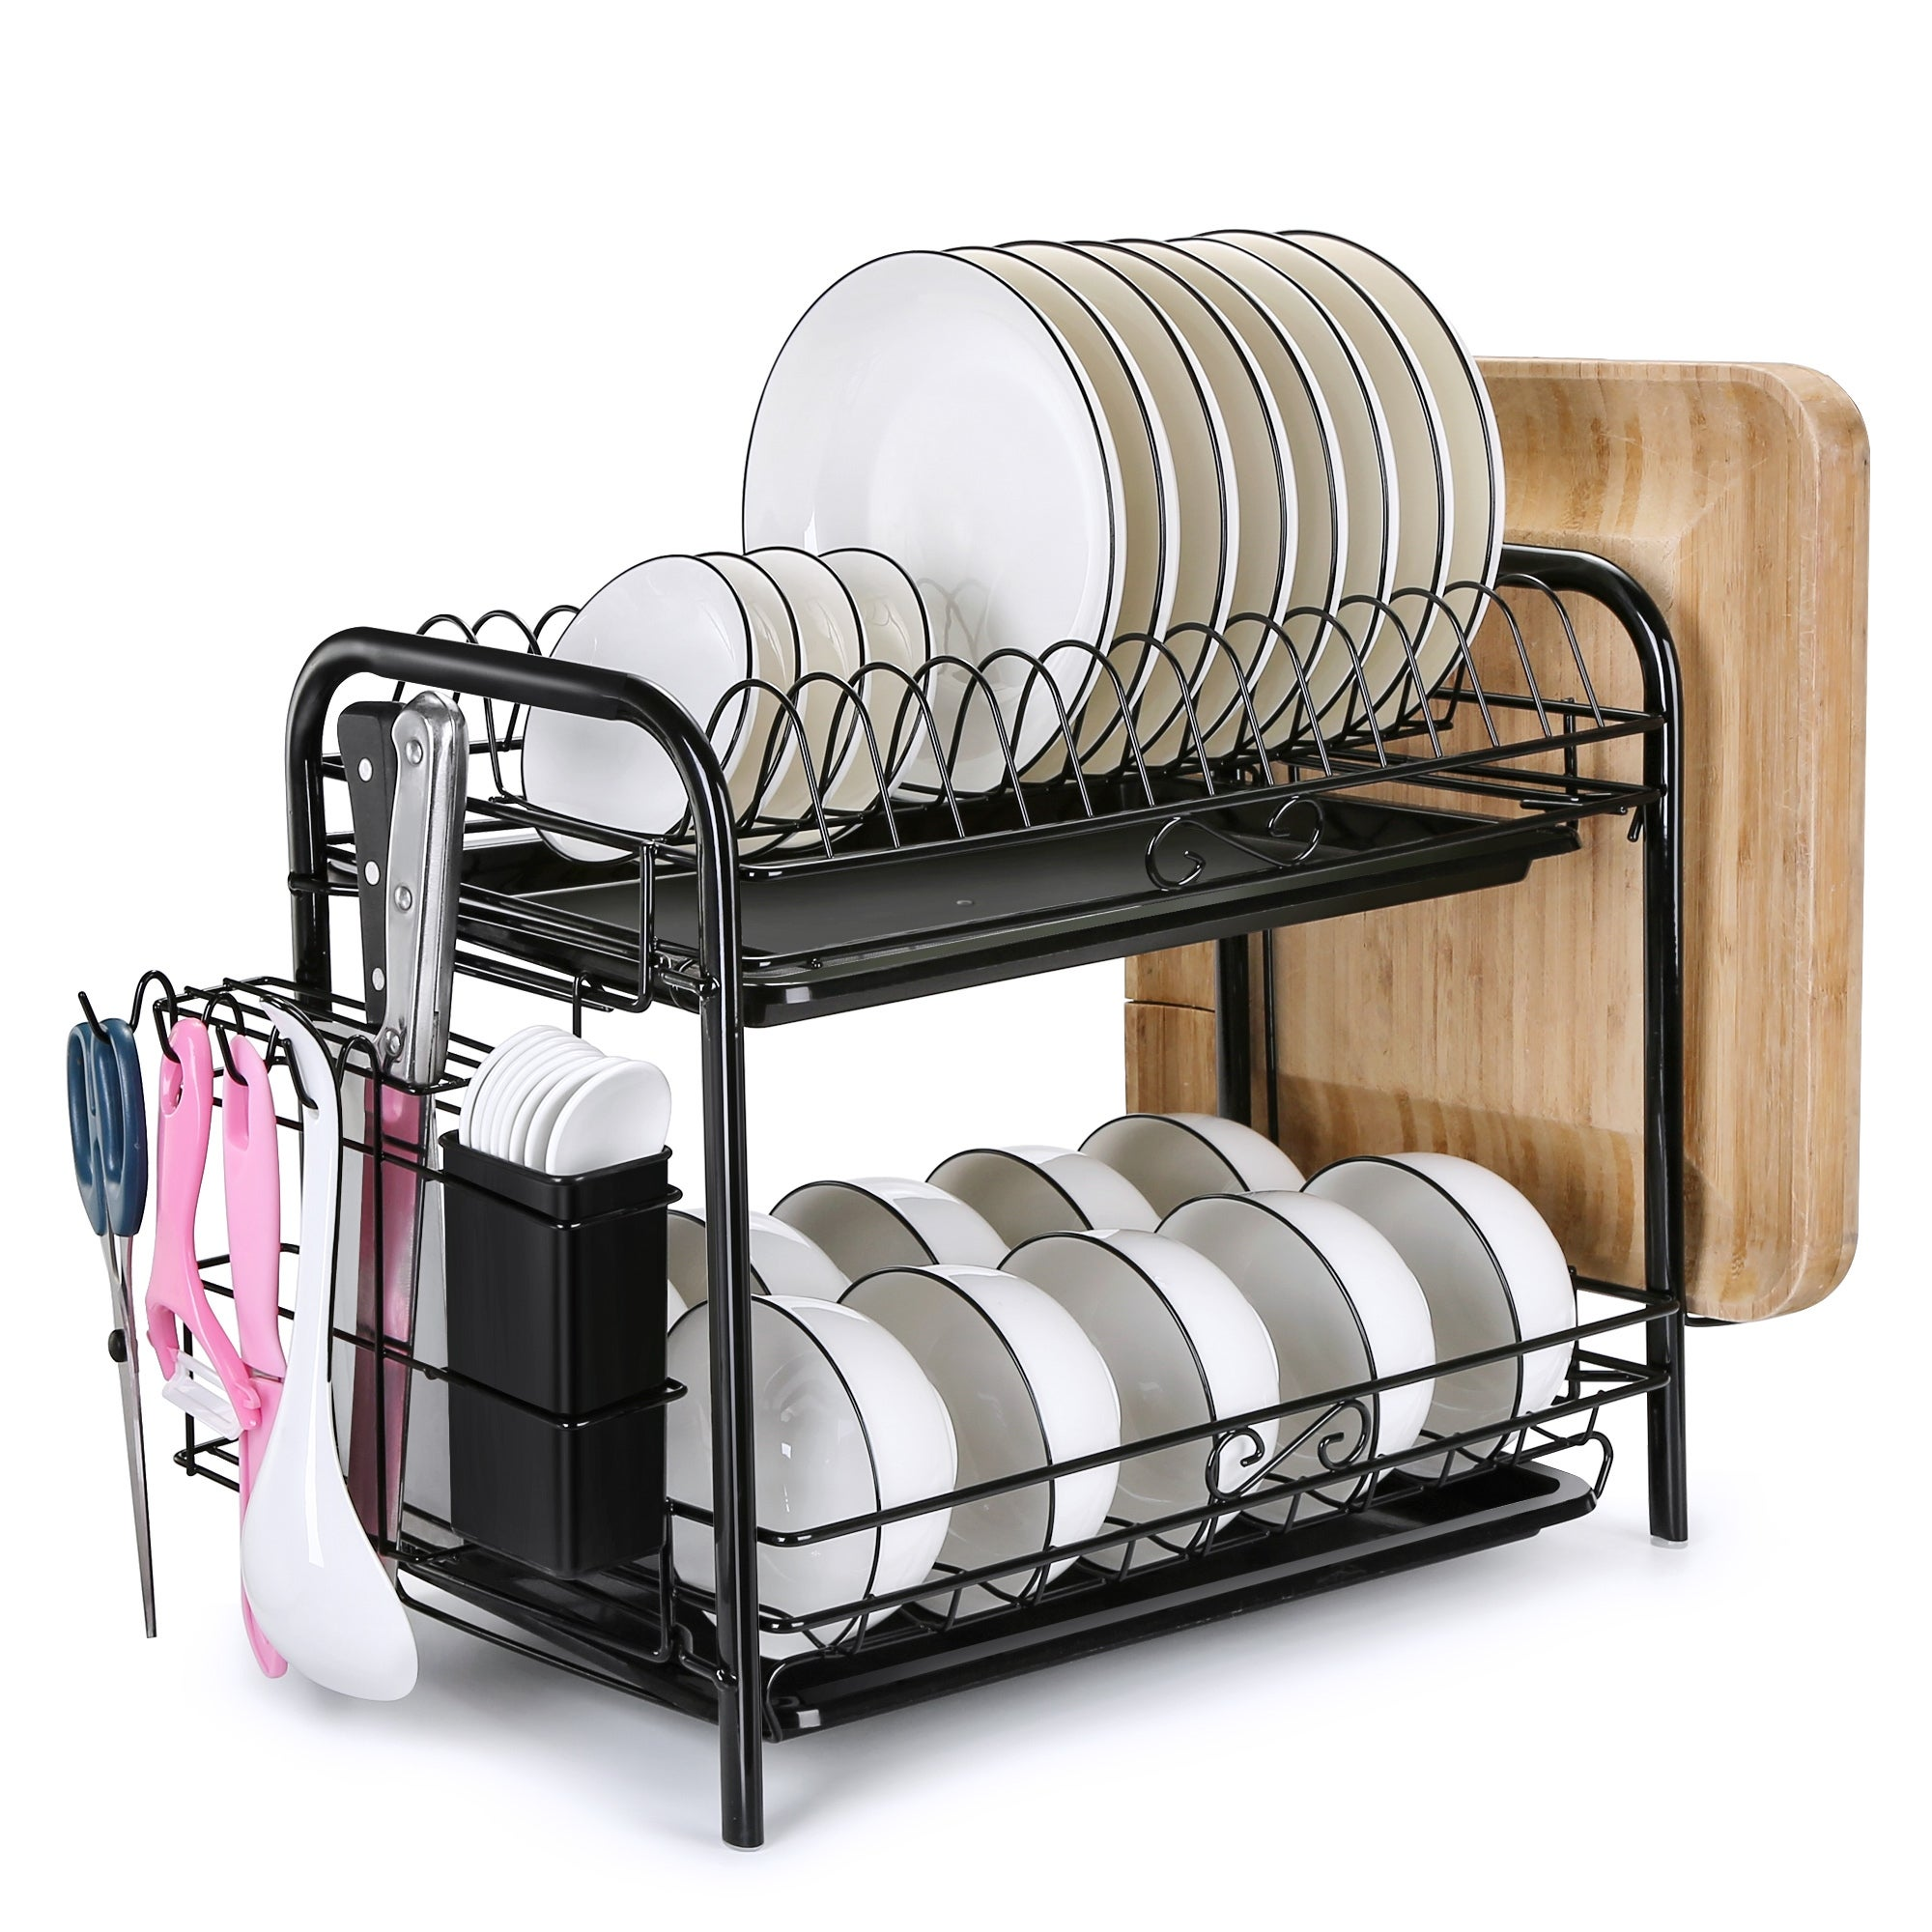 Shop 2 Tier Dish Drying Rack Dish Rack Drainer Holder Kitchen